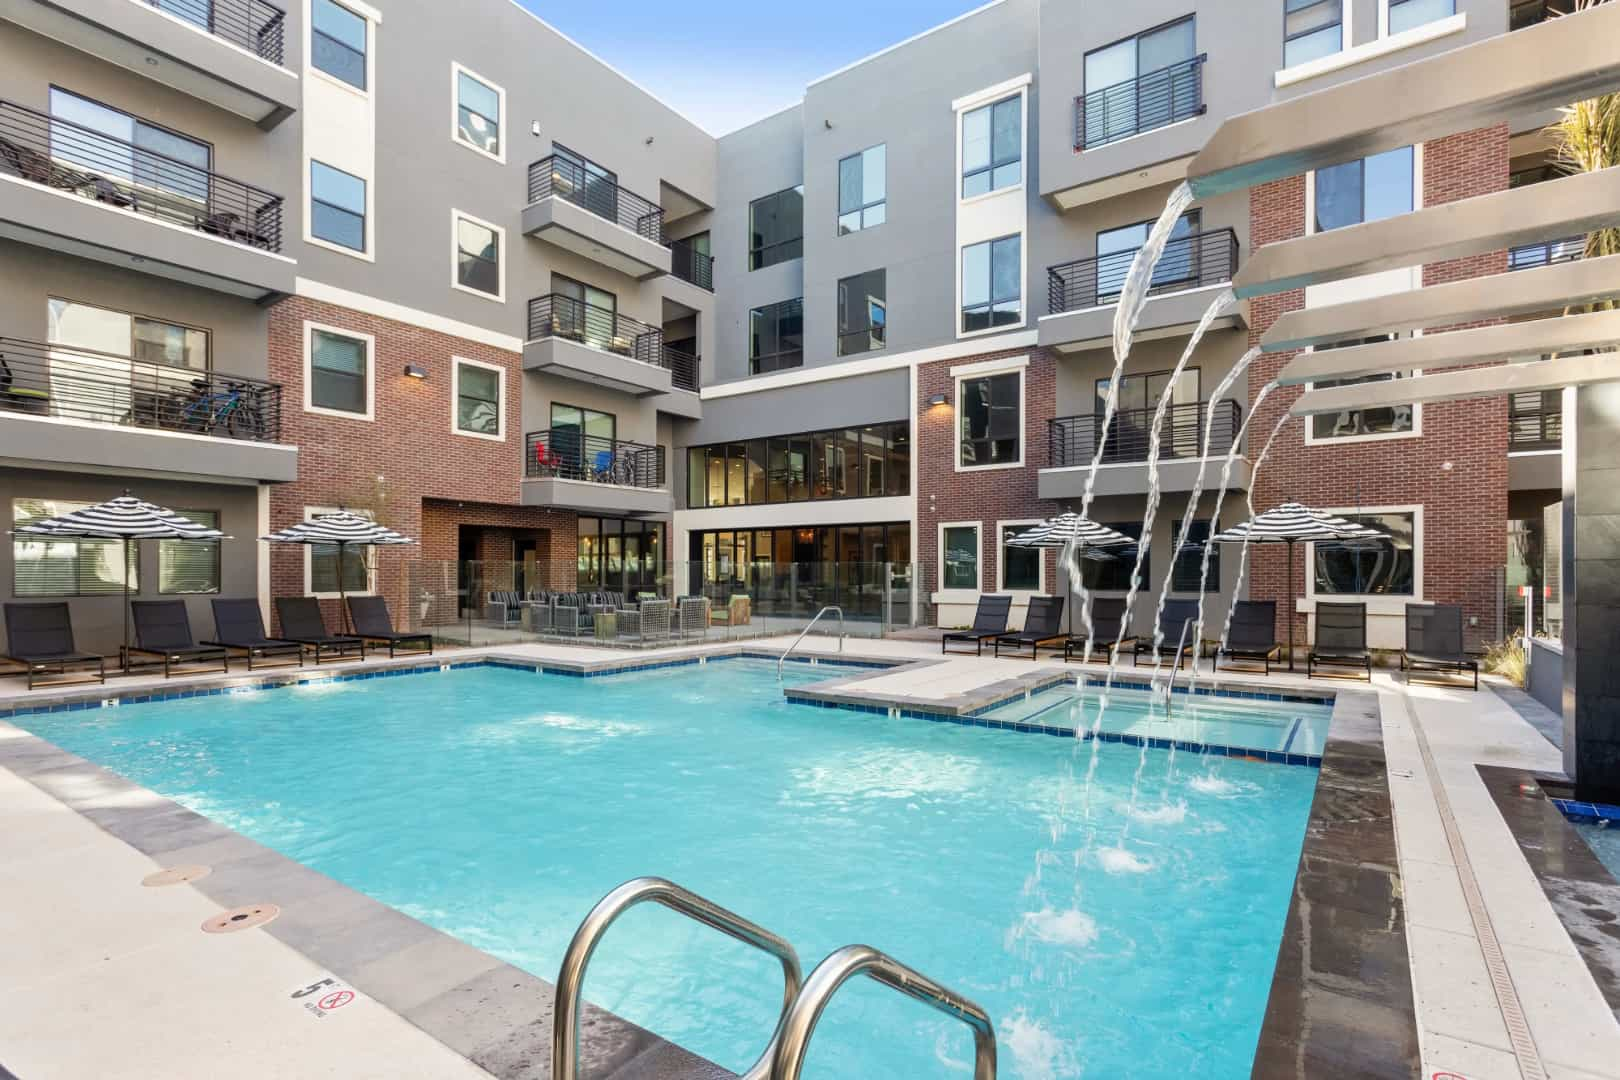 Pool with Waterfalls | Alta Central Phoenix AZ Apartments